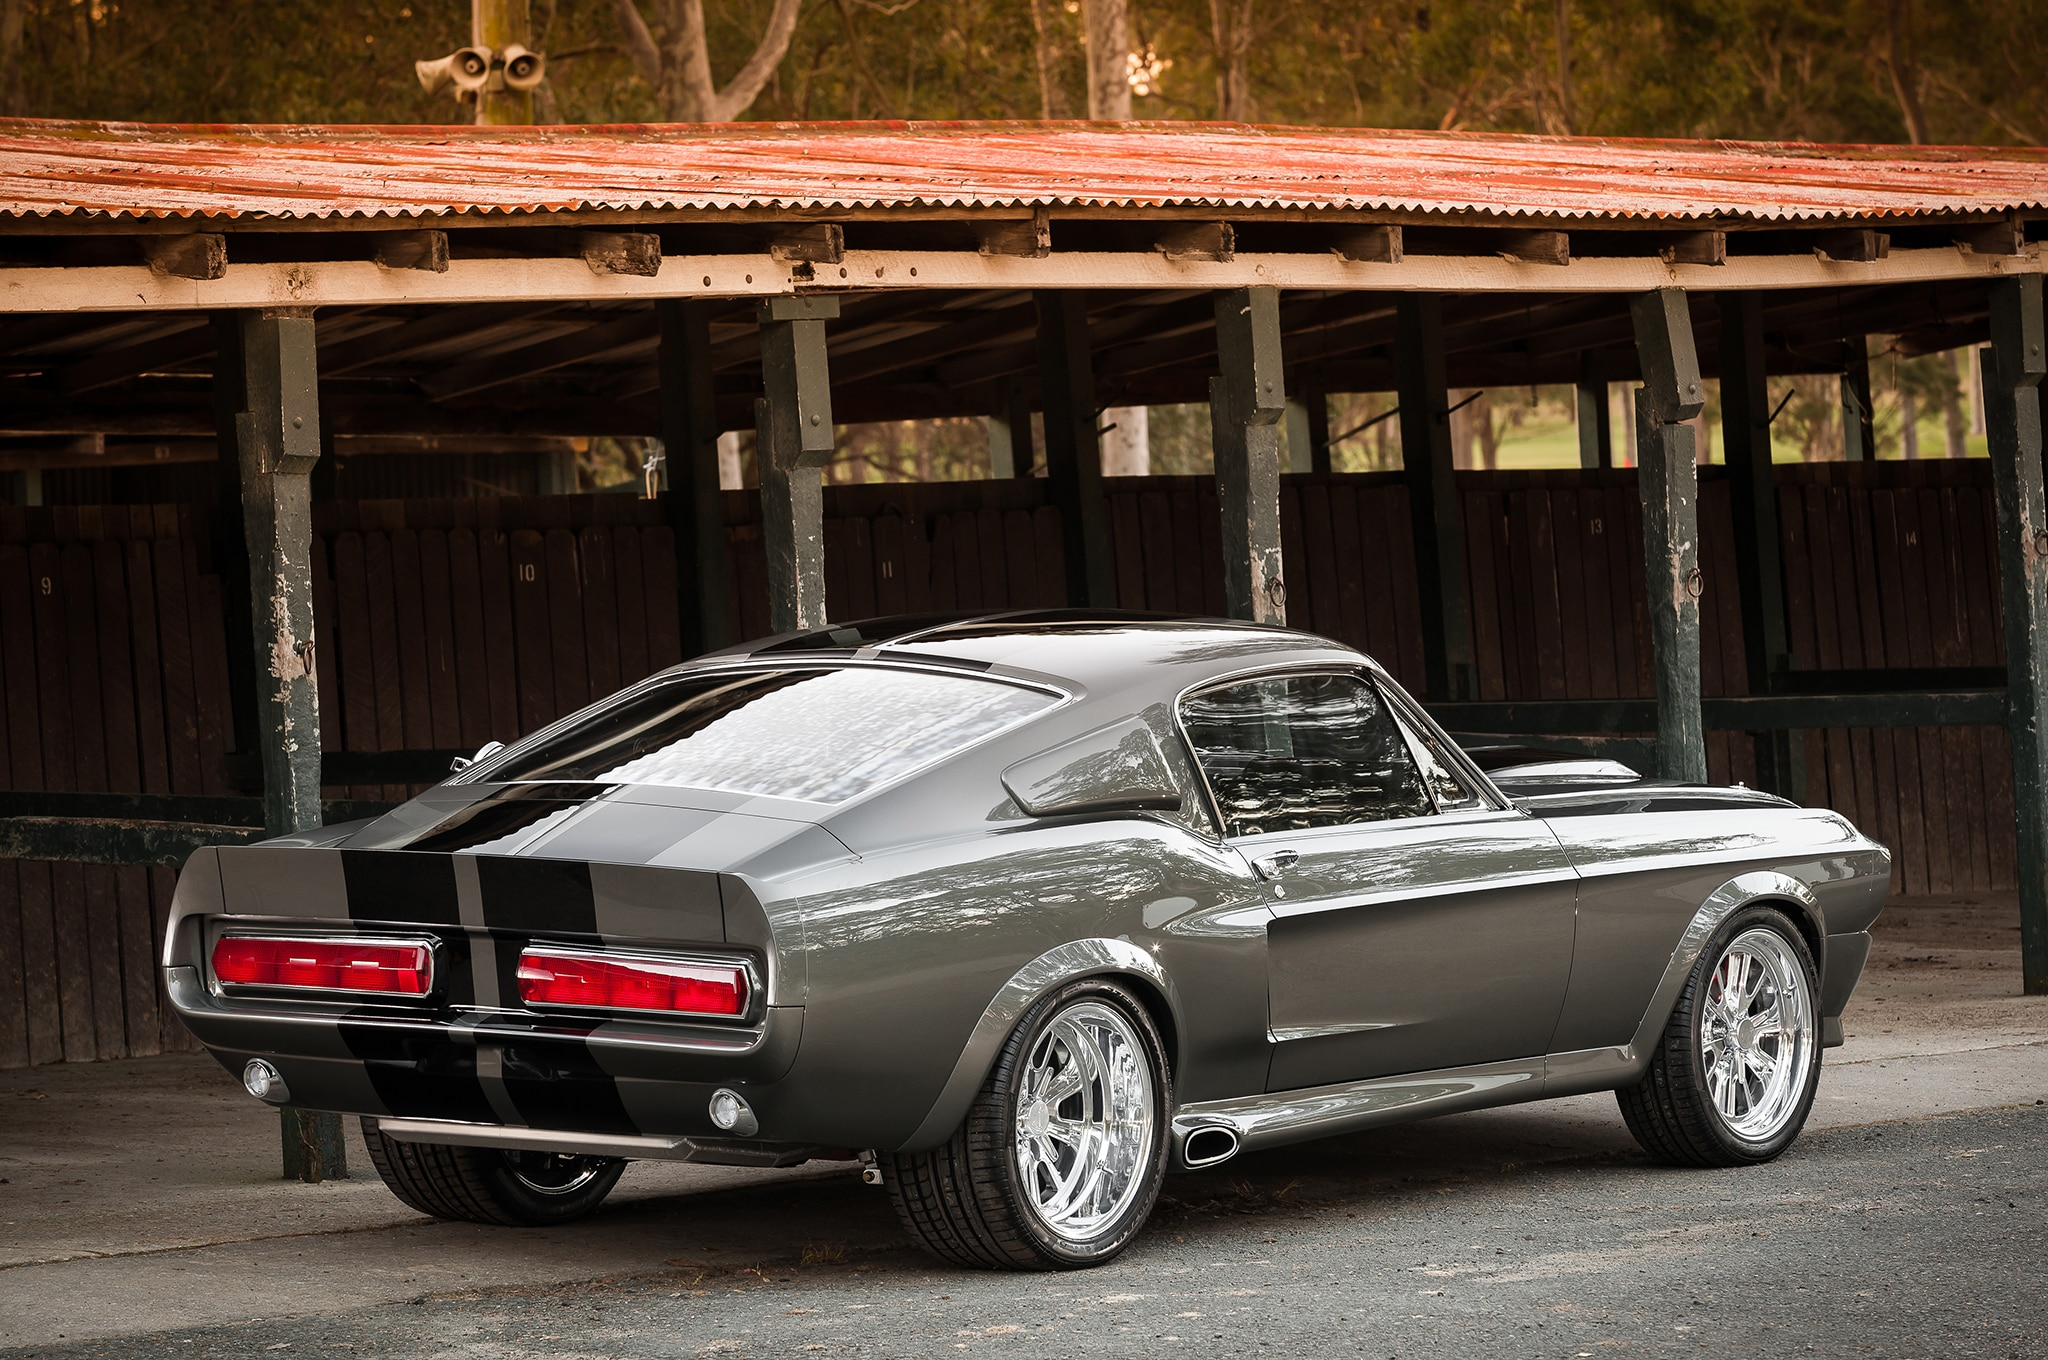 1967 Ford Mustang Rear Side View